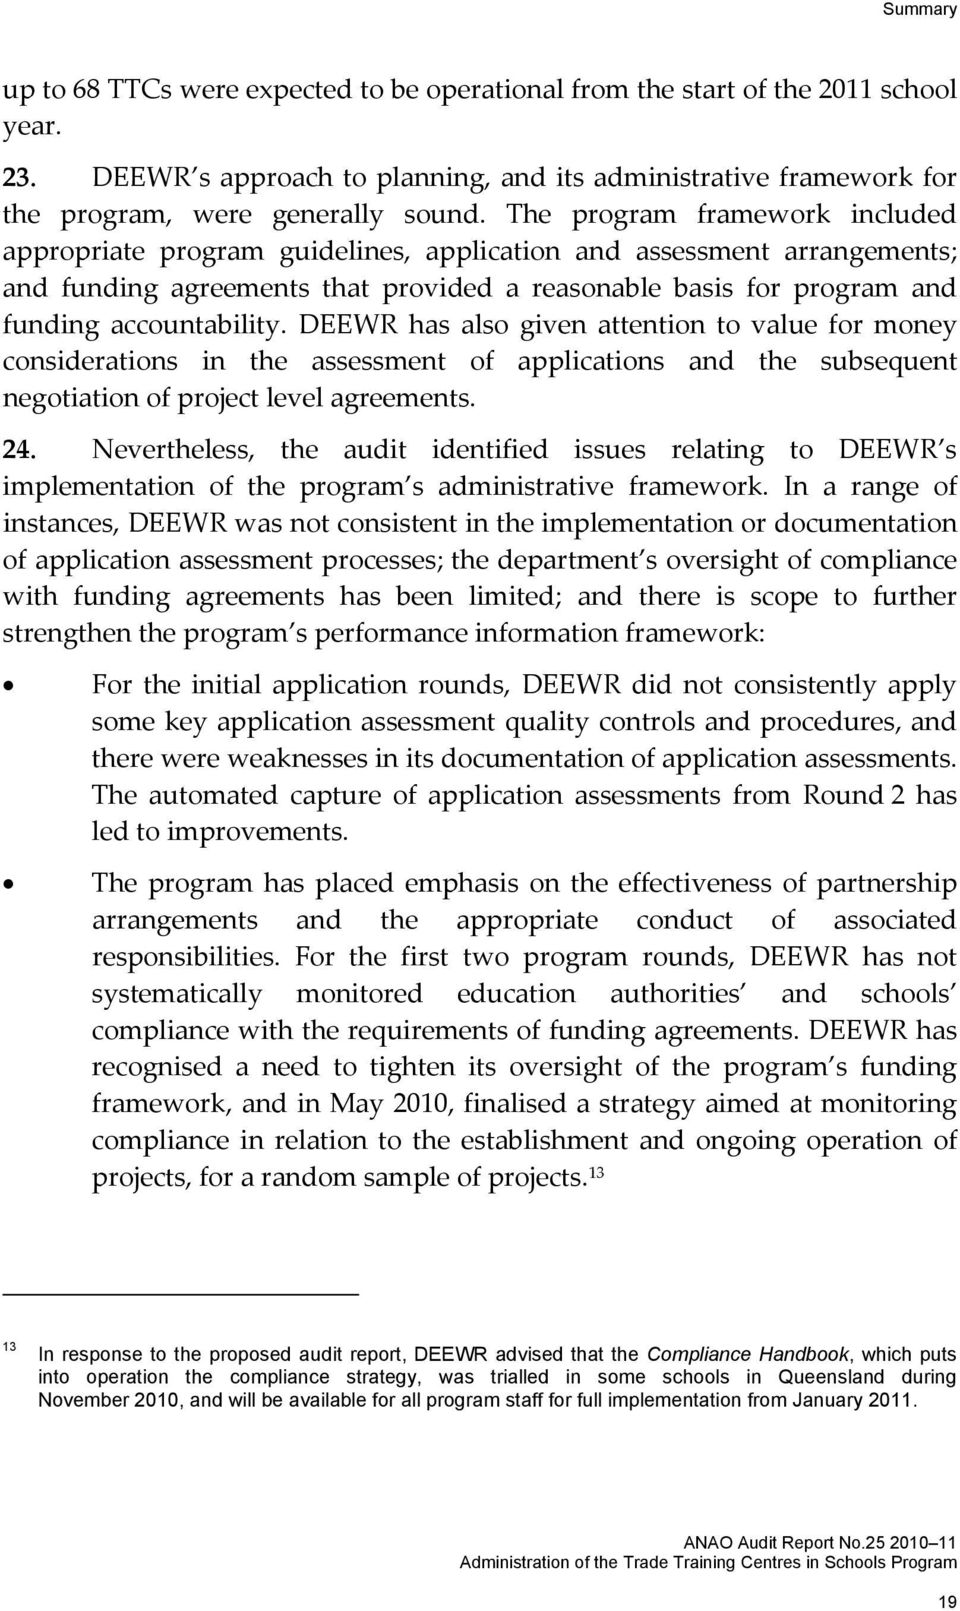 DEEWR has also given attention to value for money considerations in the assessment of applications and the subsequent negotiation of project level agreements. 24.